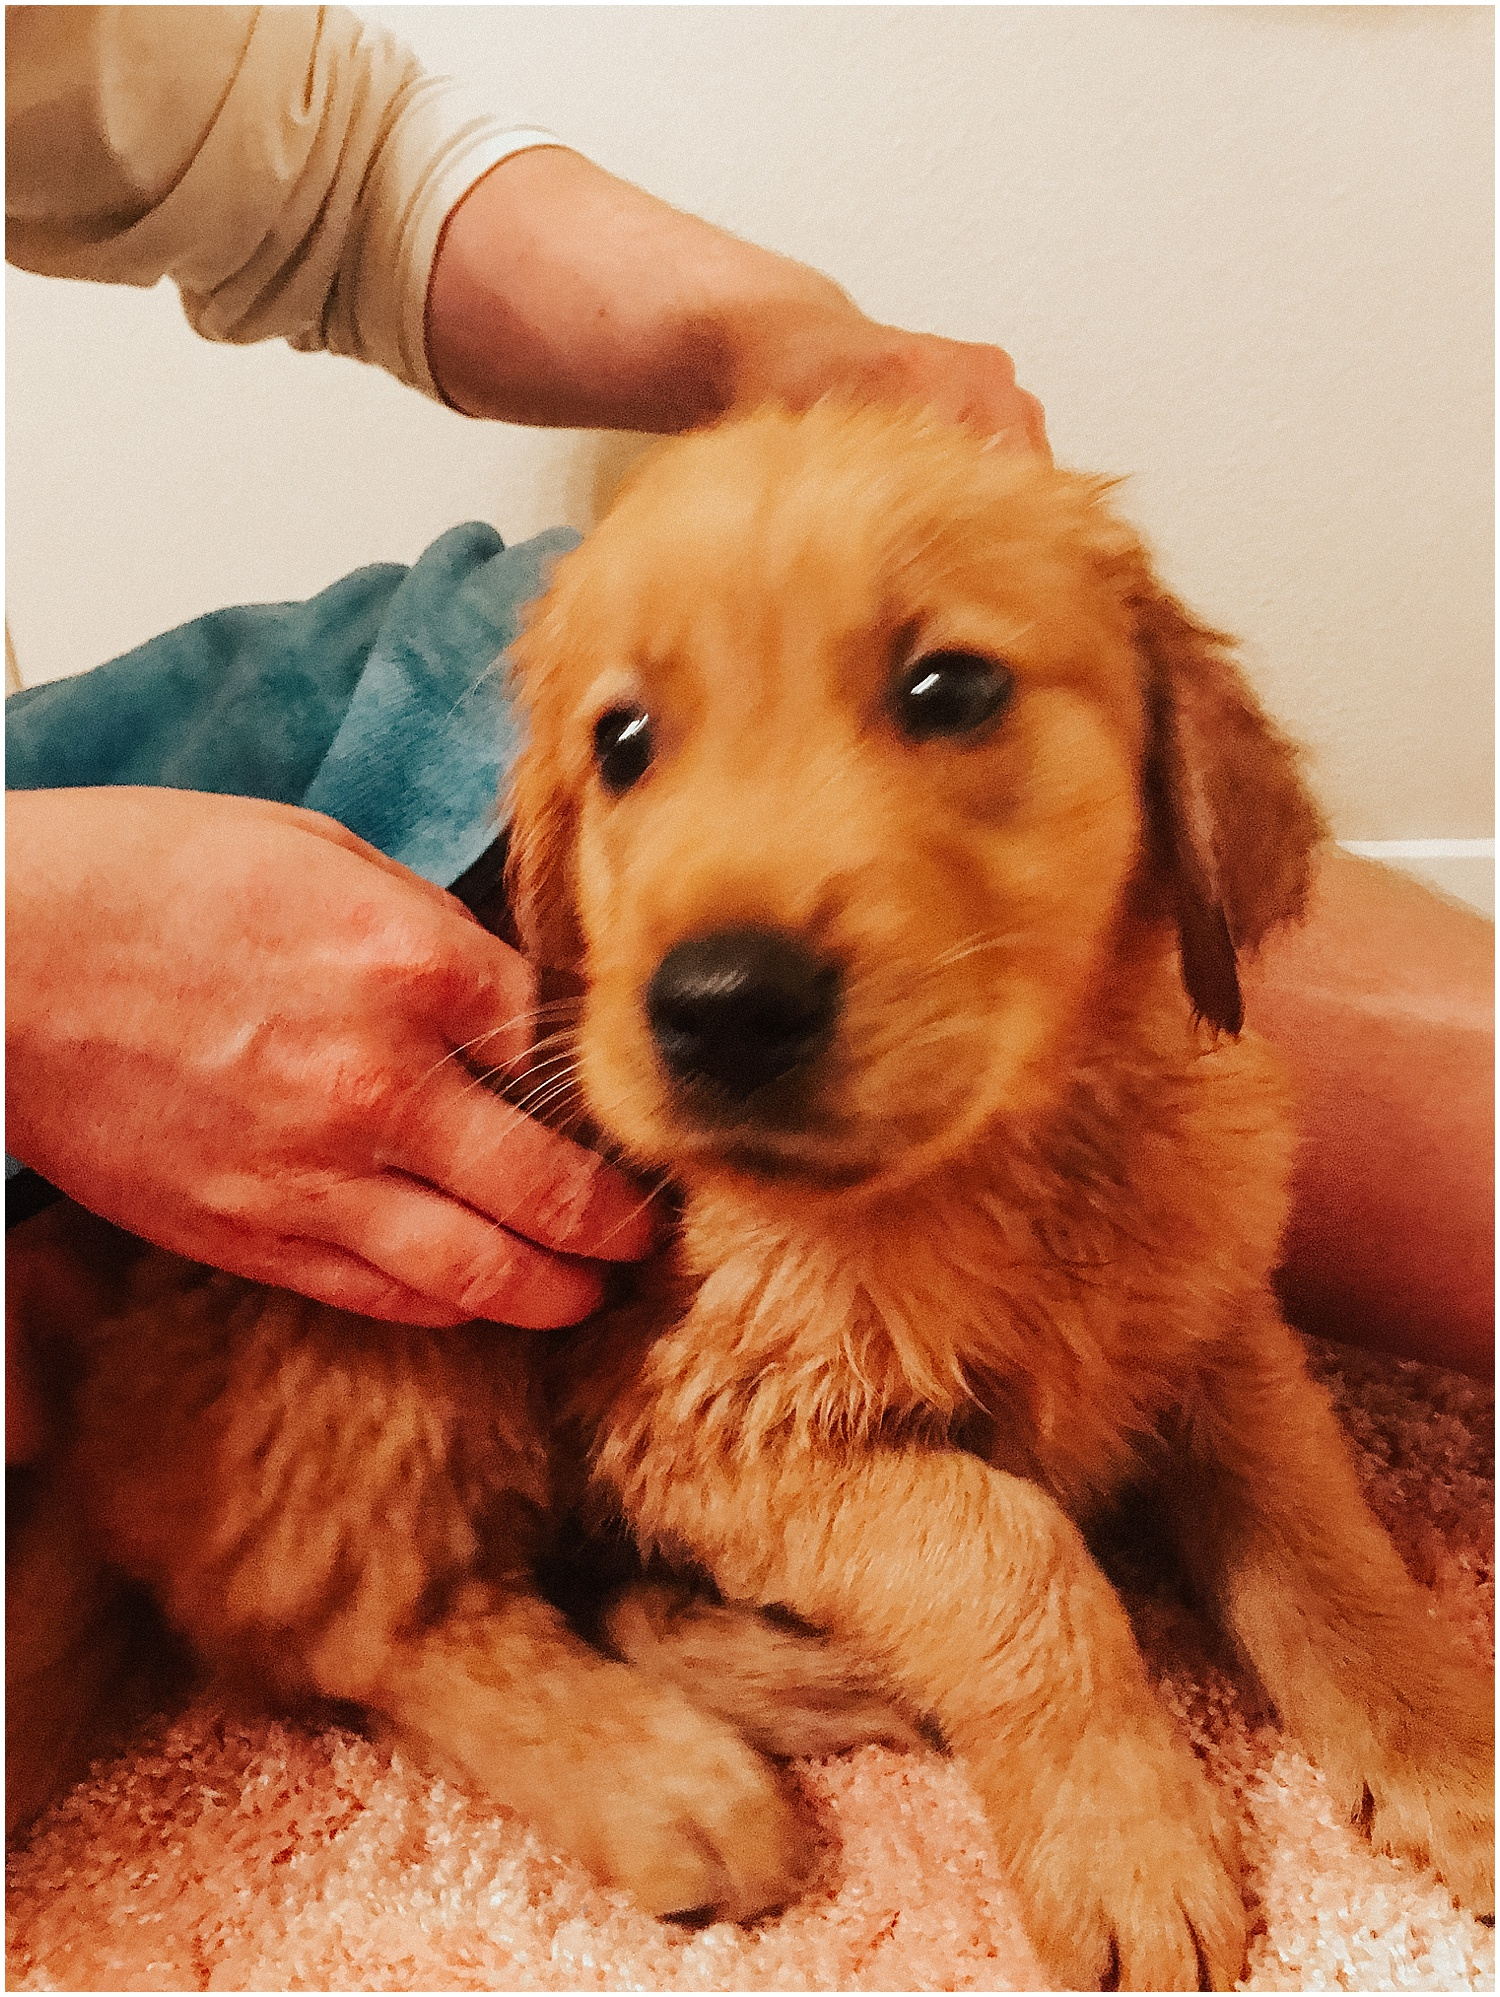 his first bath, not a fan to say the least